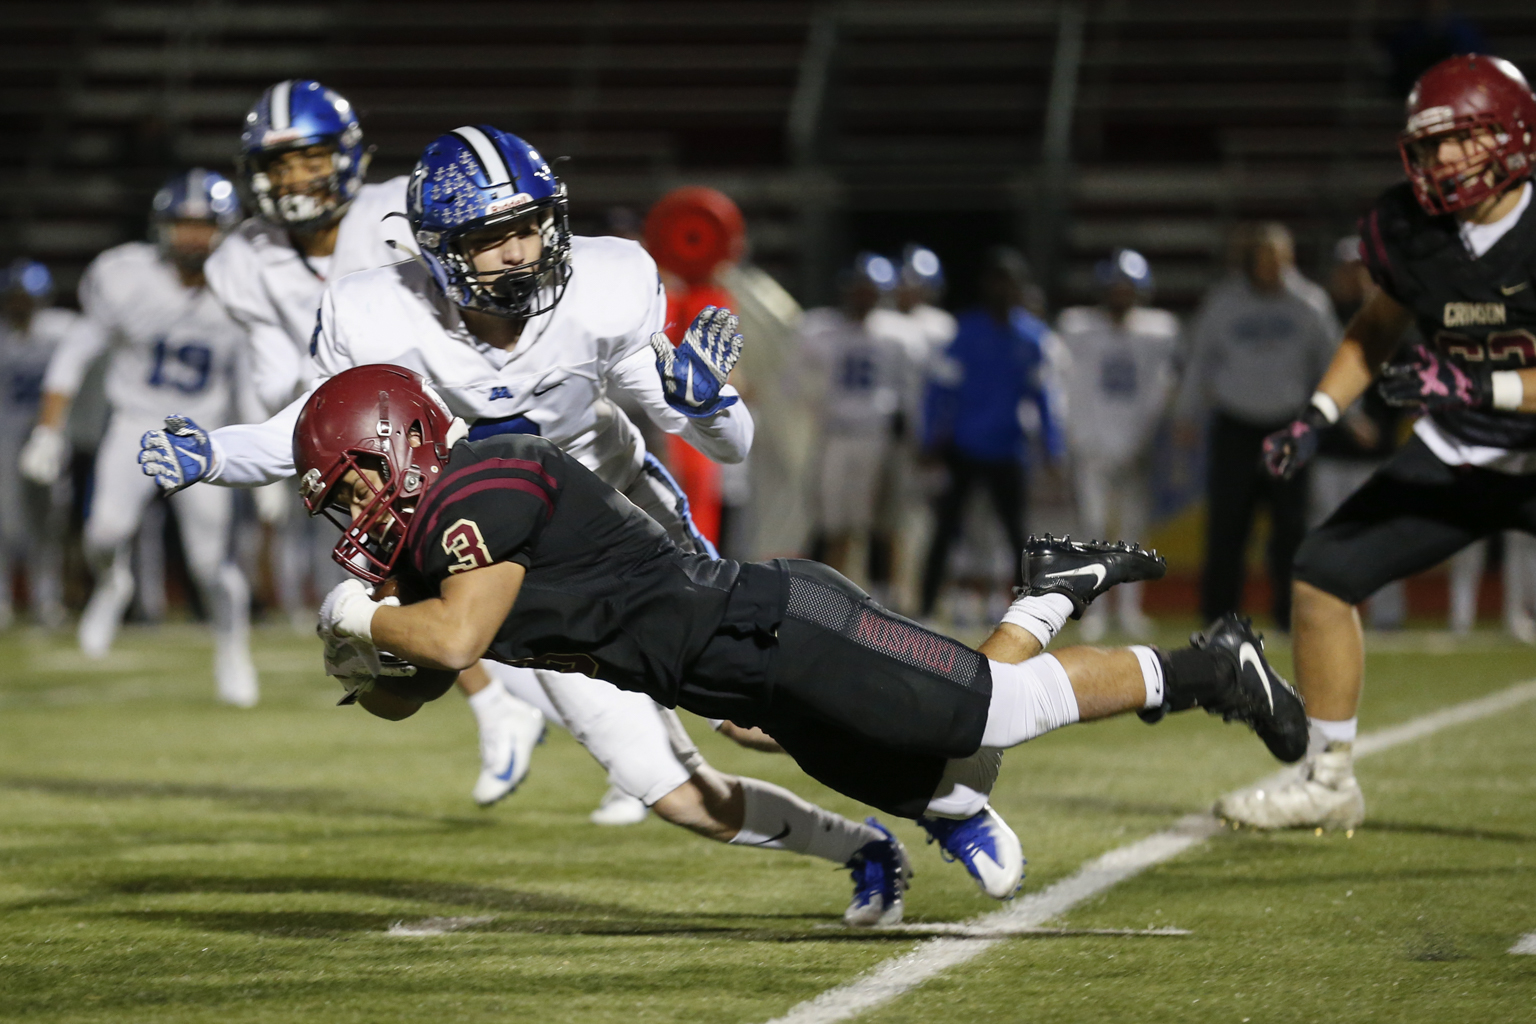 Maple Grove's Cooper Wegscheid (3) dives for extra yards at the end of a first quarter rush against Minnetonka. The Crimson defeated the Skippers 26-3 at Maple Grove High School. Photo by Jeff Lawler, SportsEngine